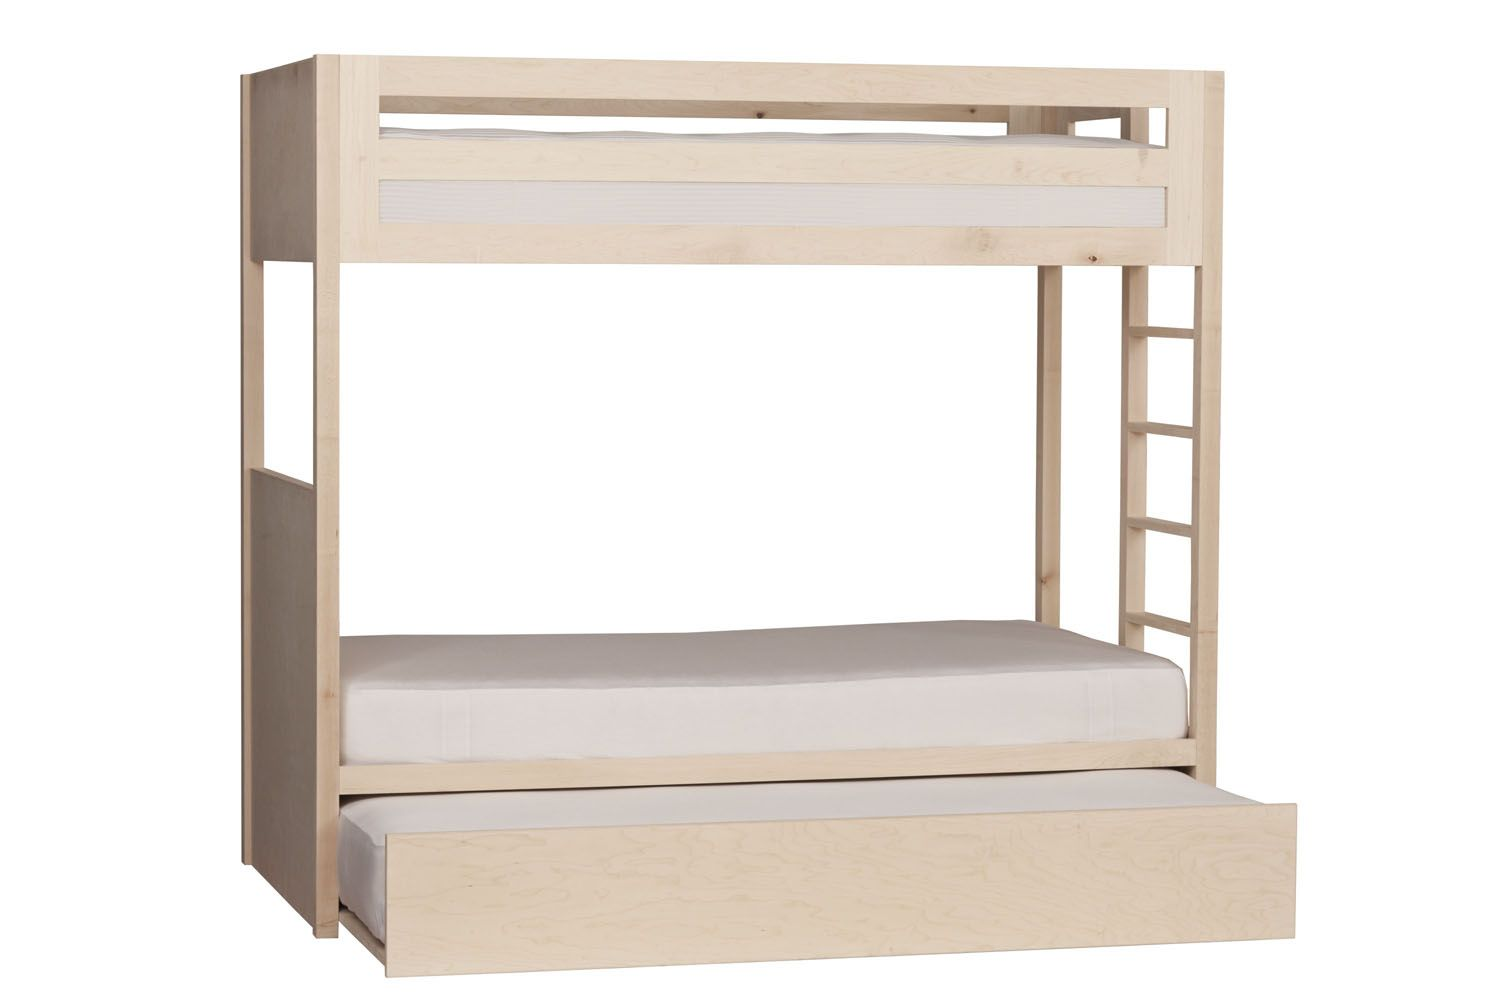 Twin Xl Bunk Beds With Trundle Bunk Beds Bunk Bed With Trundle